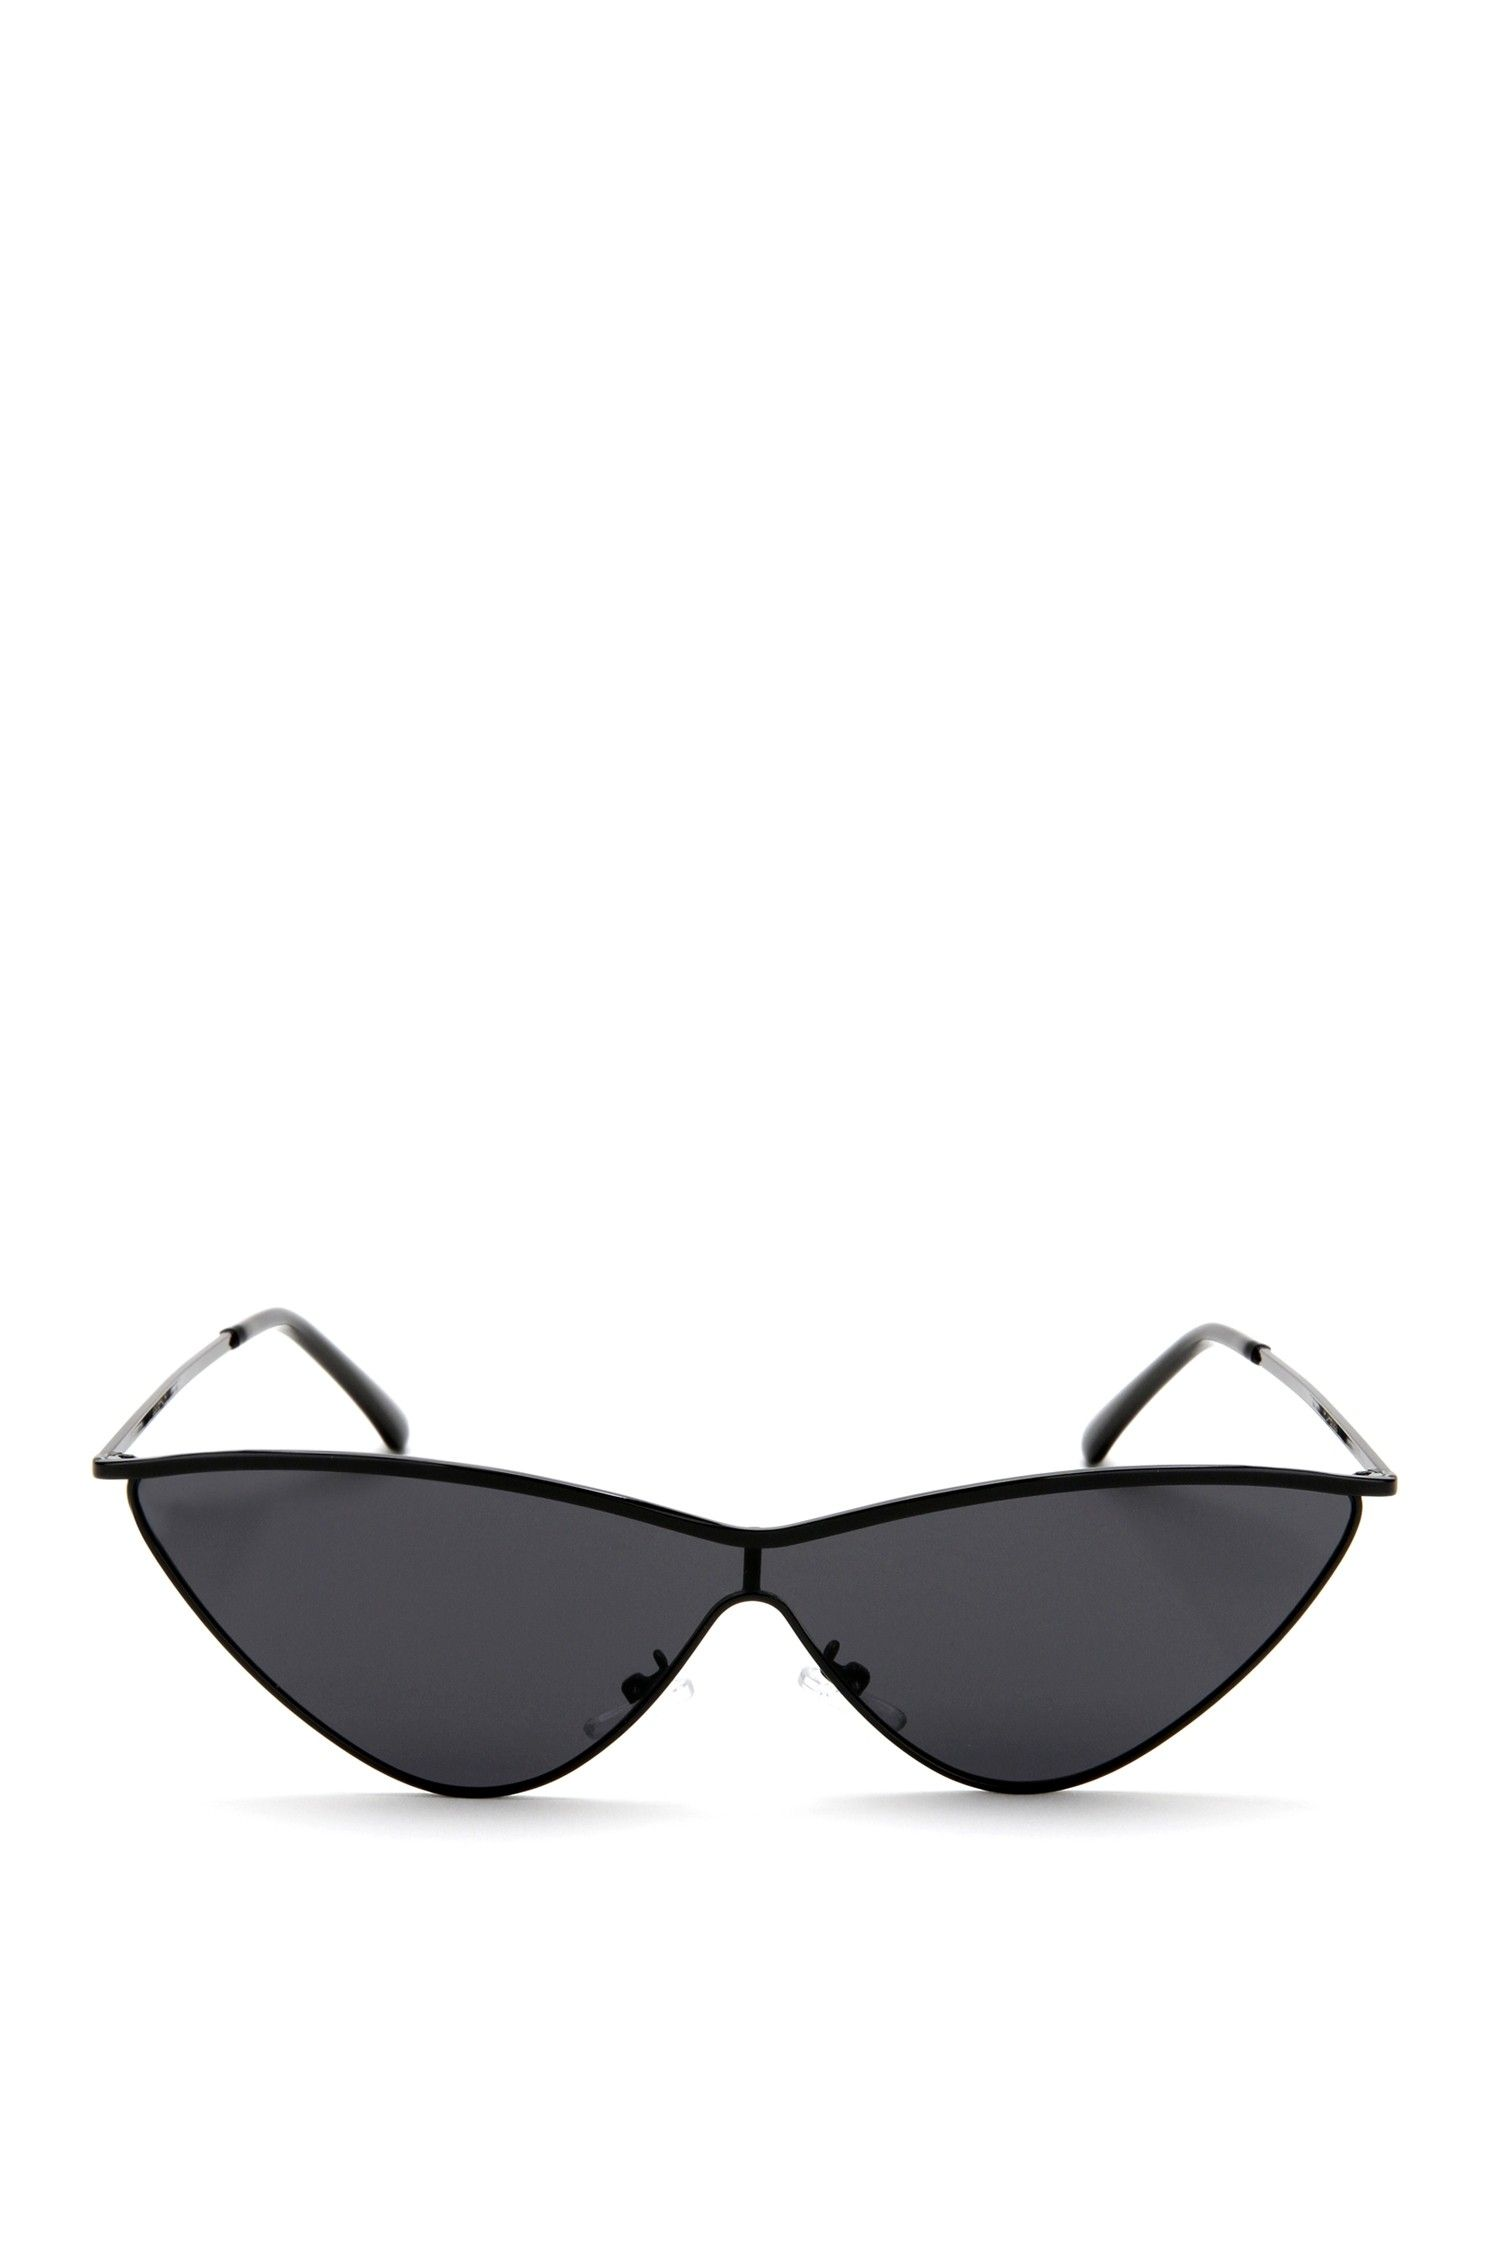 bc3b24c37b Edgy Cat Eye Sunglasses Love cat eye Sunglasses  We ve got a whole board  jut like these  ) Don t miss the biggest retro pointy sunglasses trend of  2018 and ...